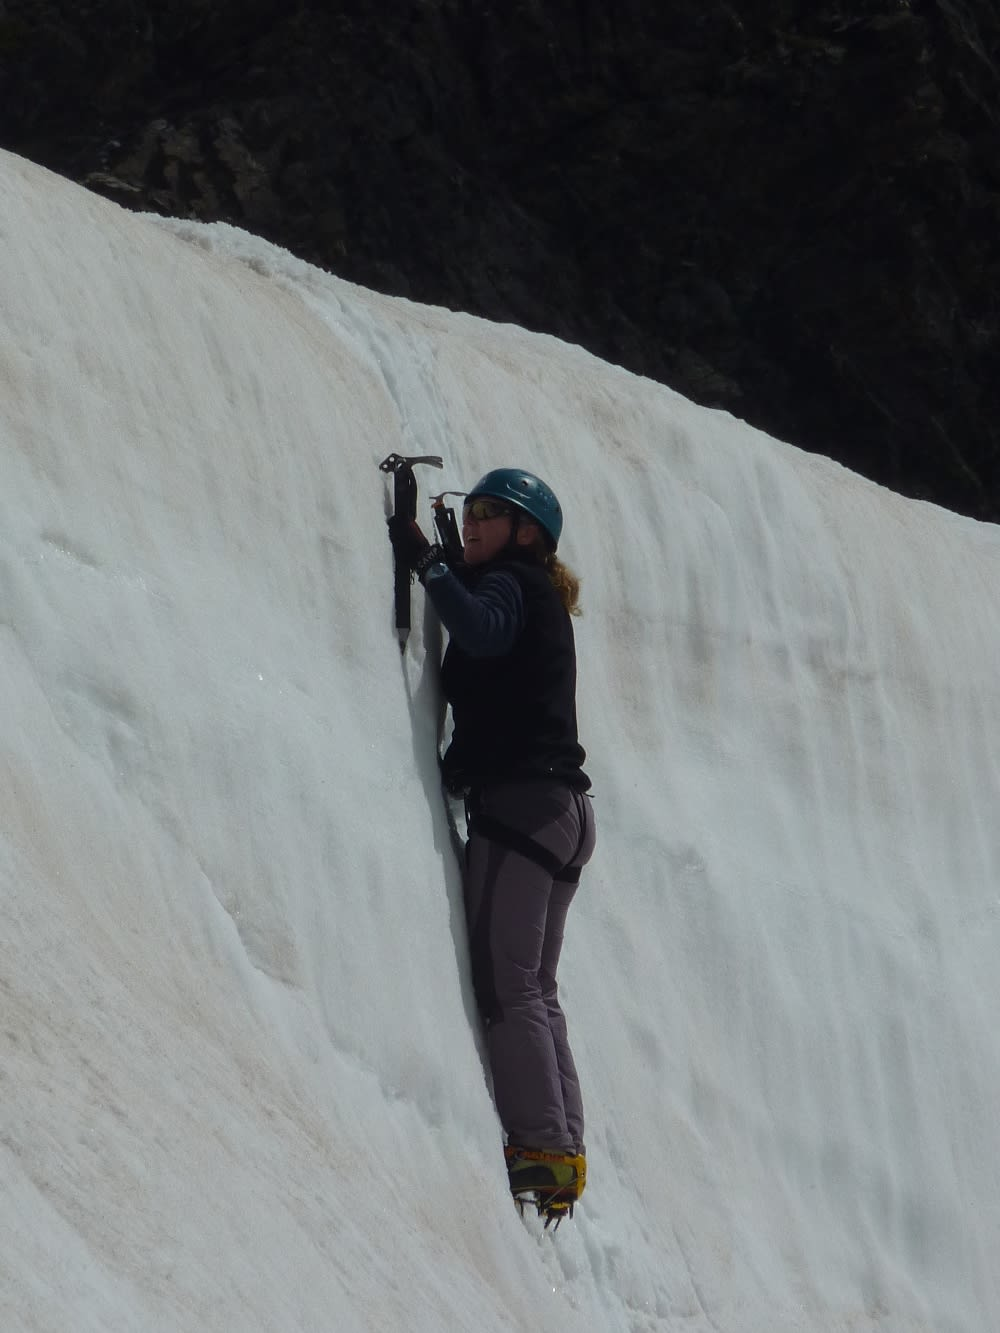 Errrr this part was vertical. I struggled to get foot placements as the snow was turning a little soft